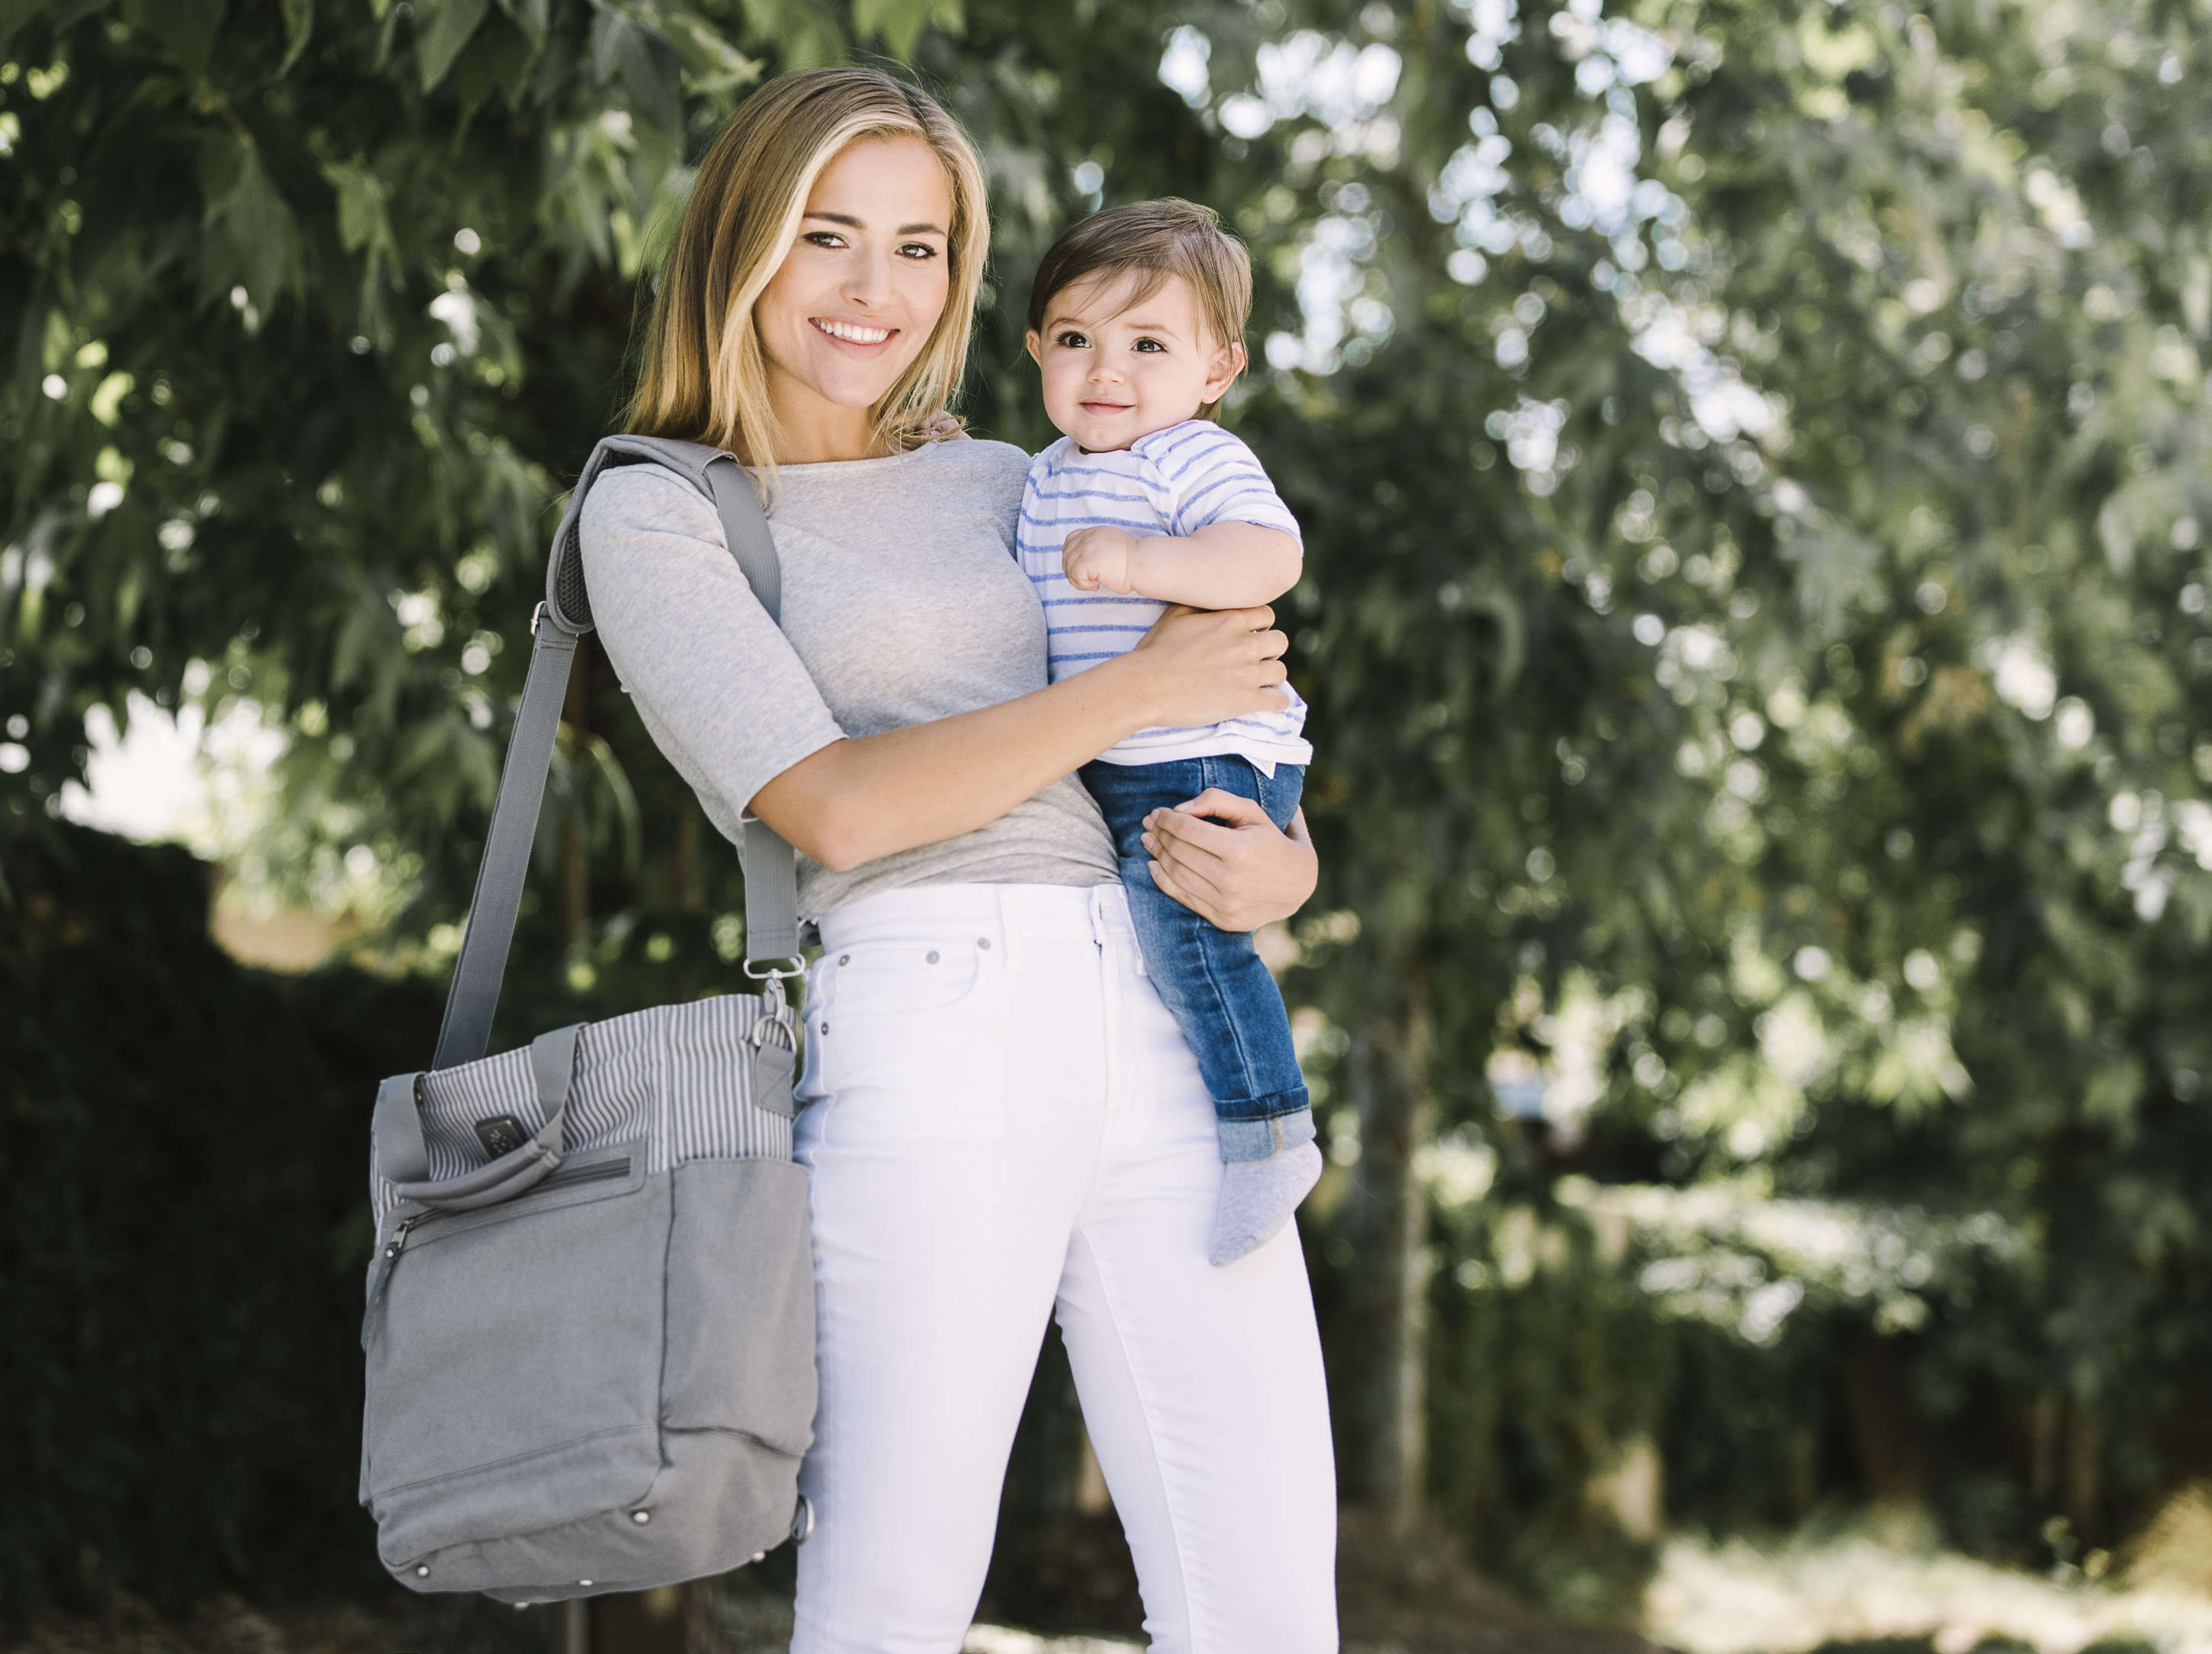 model with a gray diaper bag tote bag on the shoulder and also holding a baby